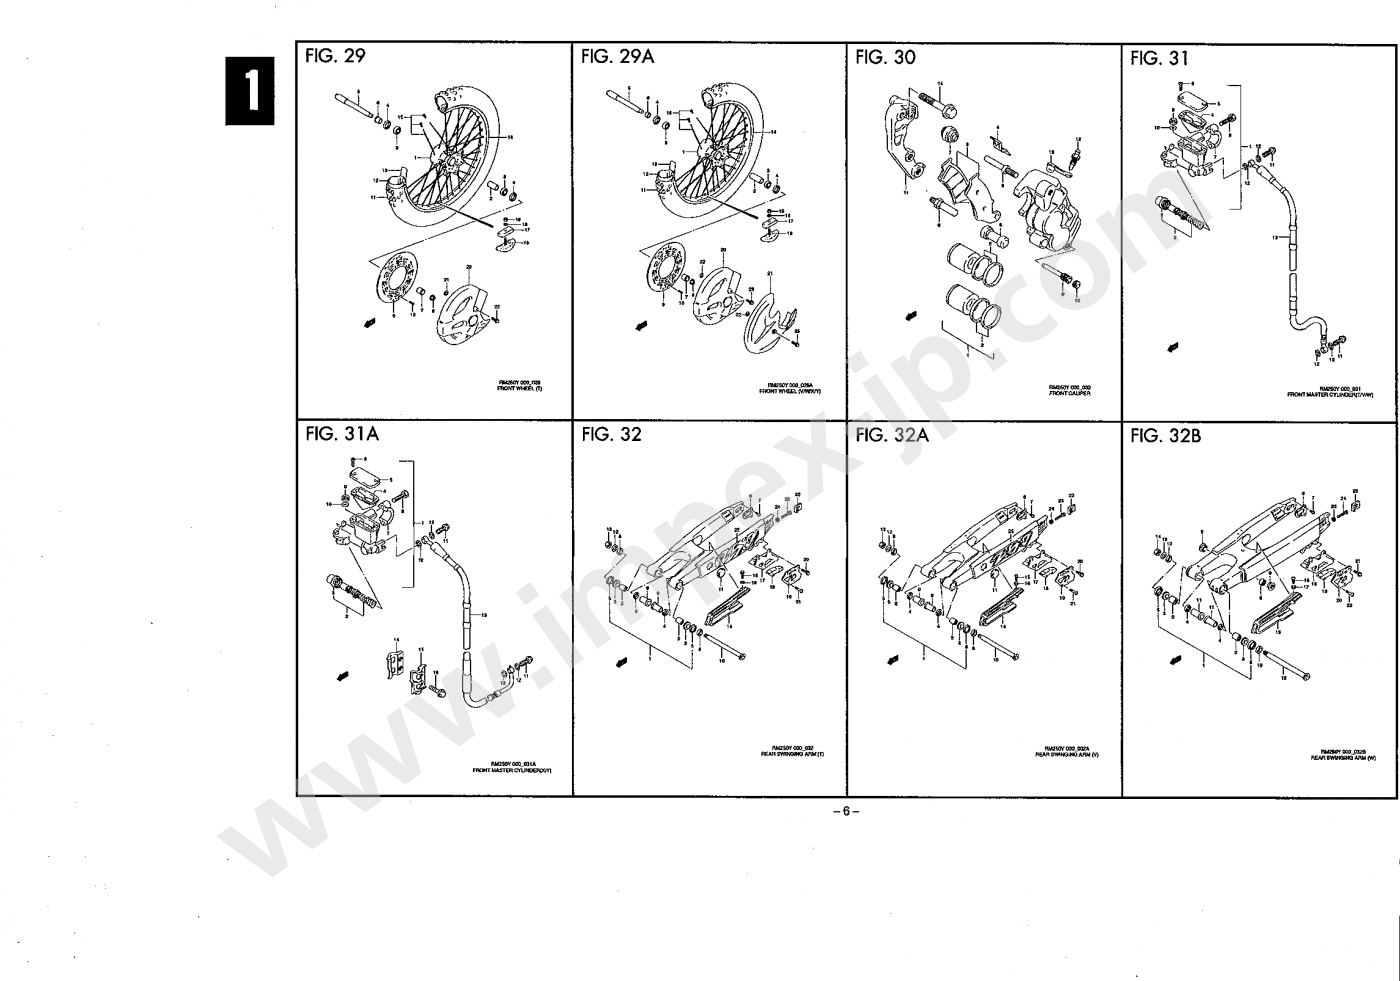 Motorcycle Parts Suzuki Rm250 Rj17a Impex Japan 2000 Rm 250 Engine Diagram Select Schema For Detail Viewing